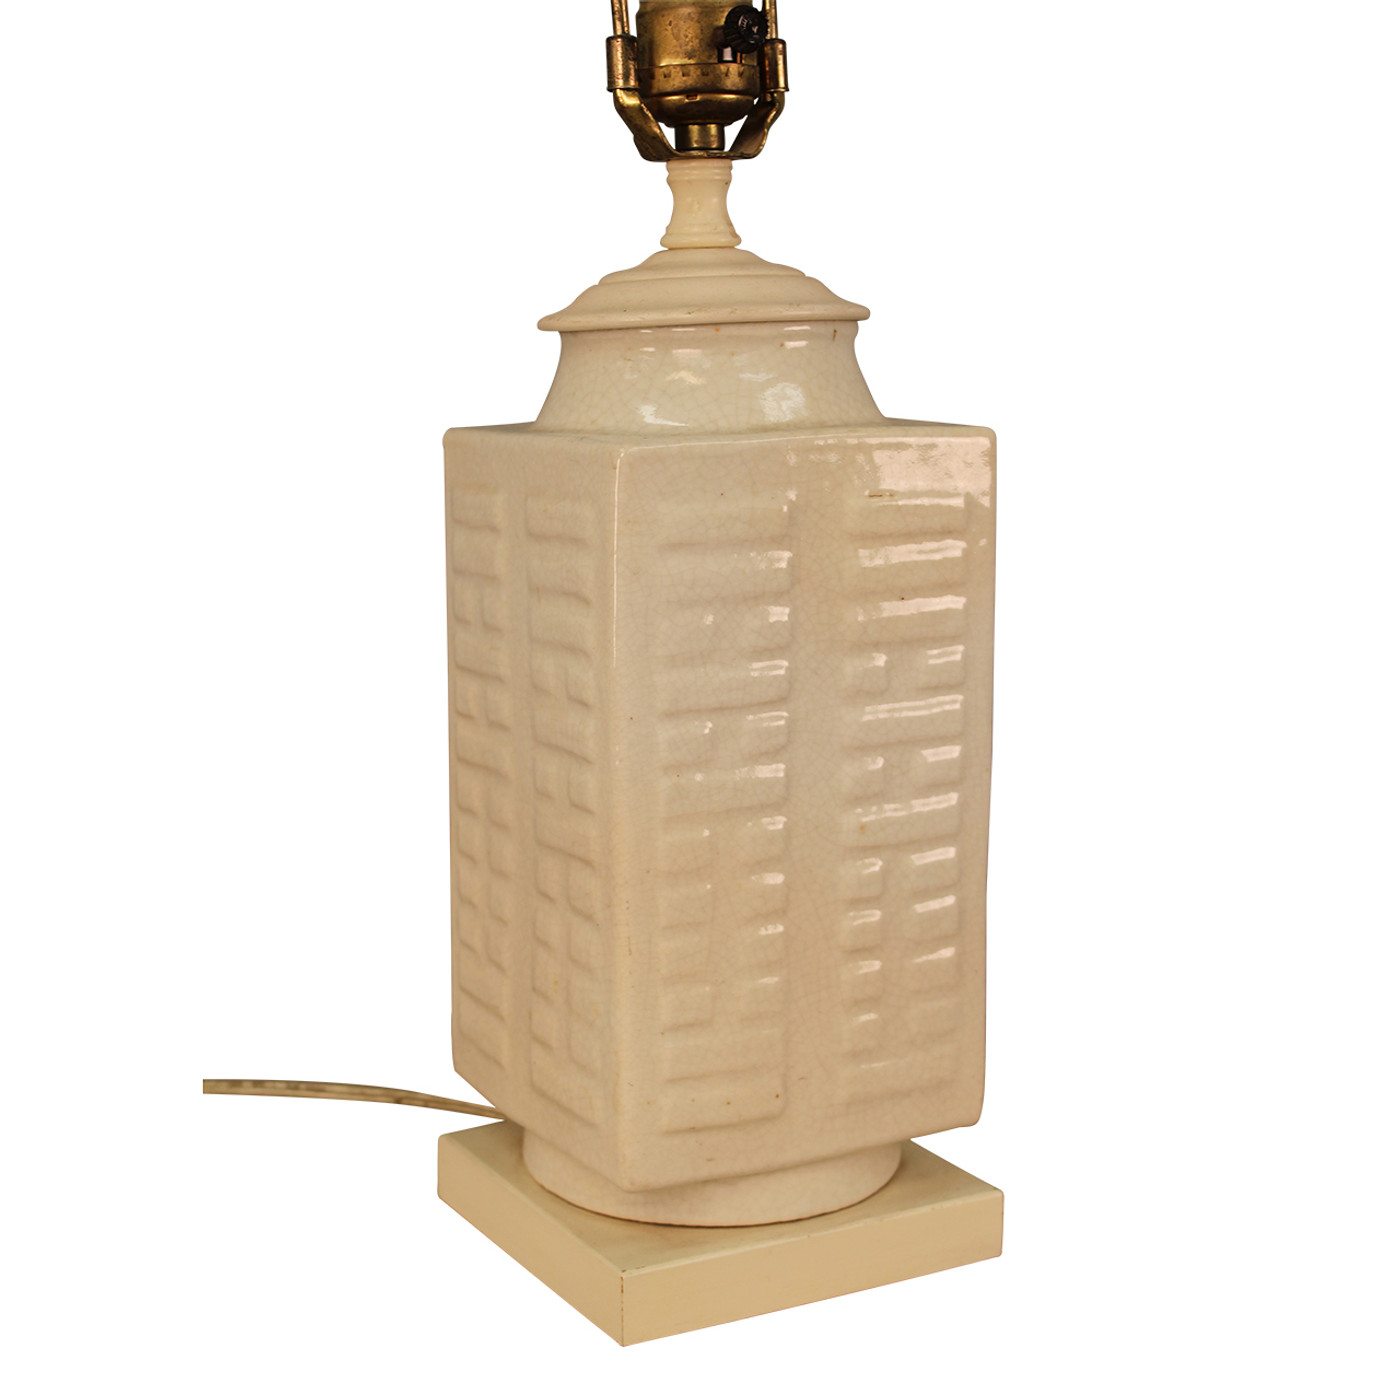 Table Lamp from 19th c. Porcelain - White